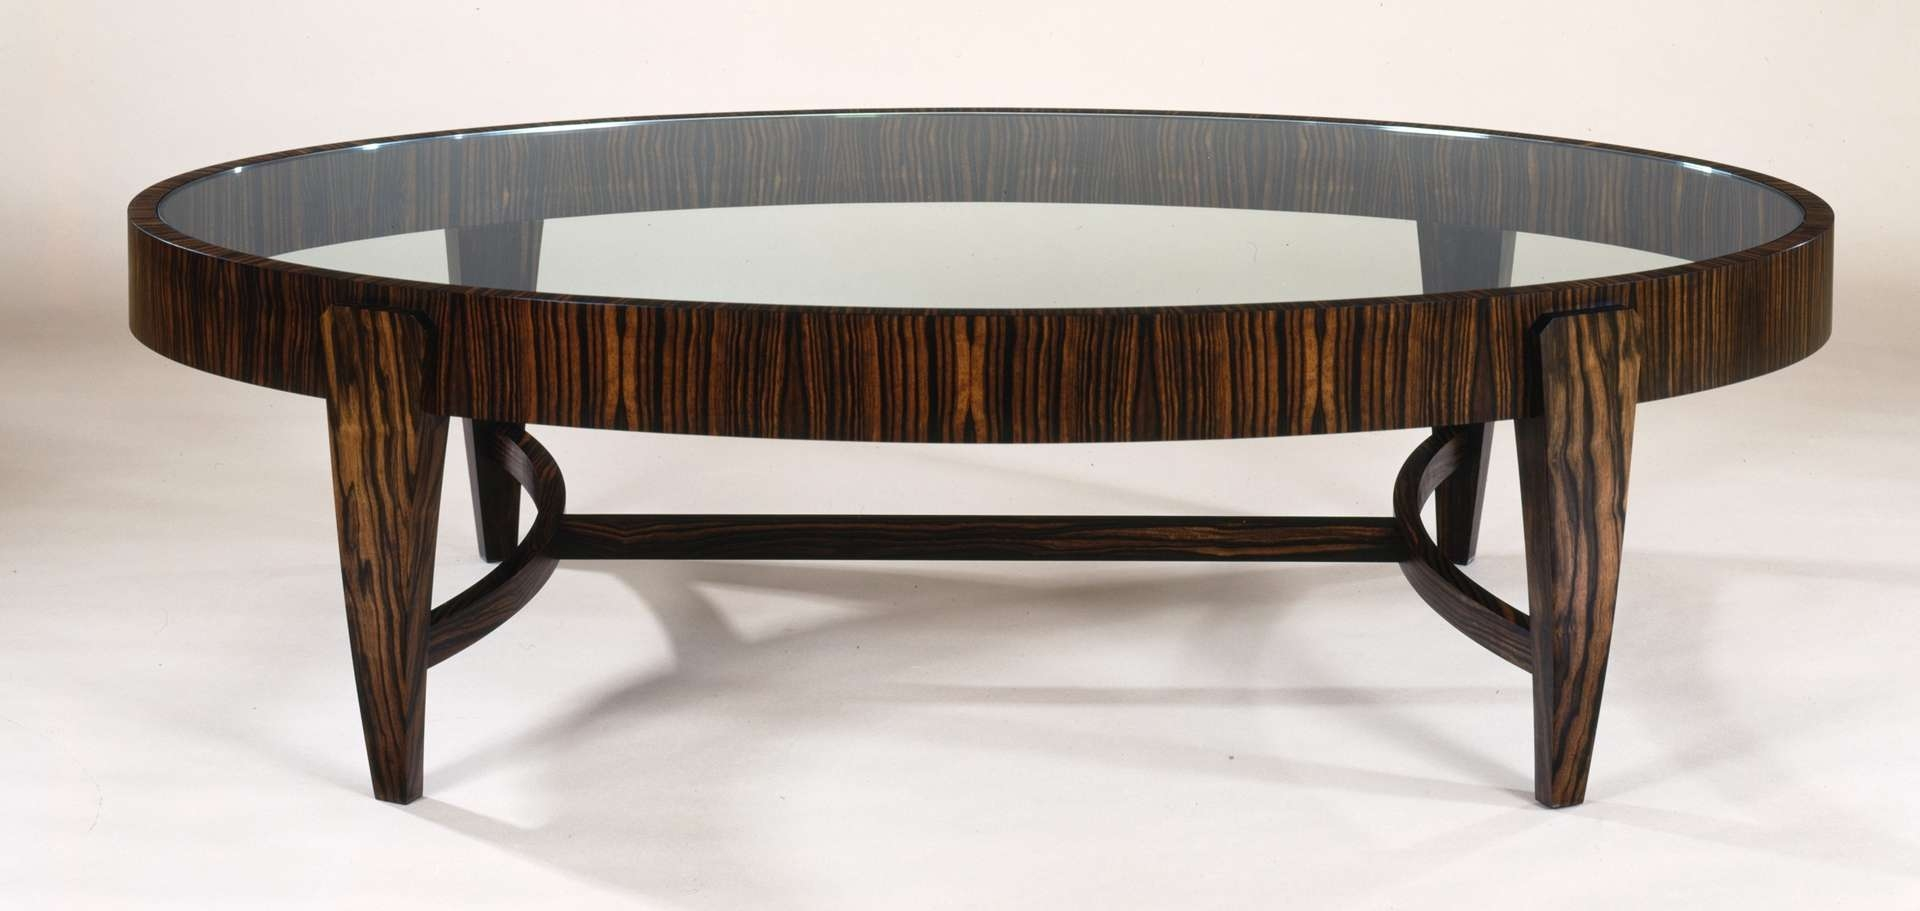 Oval Coffee Table Contemporary Coffee Tables For Small Spaces Regarding Favorite Oval Wood Coffee Tables (Gallery 16 of 20)